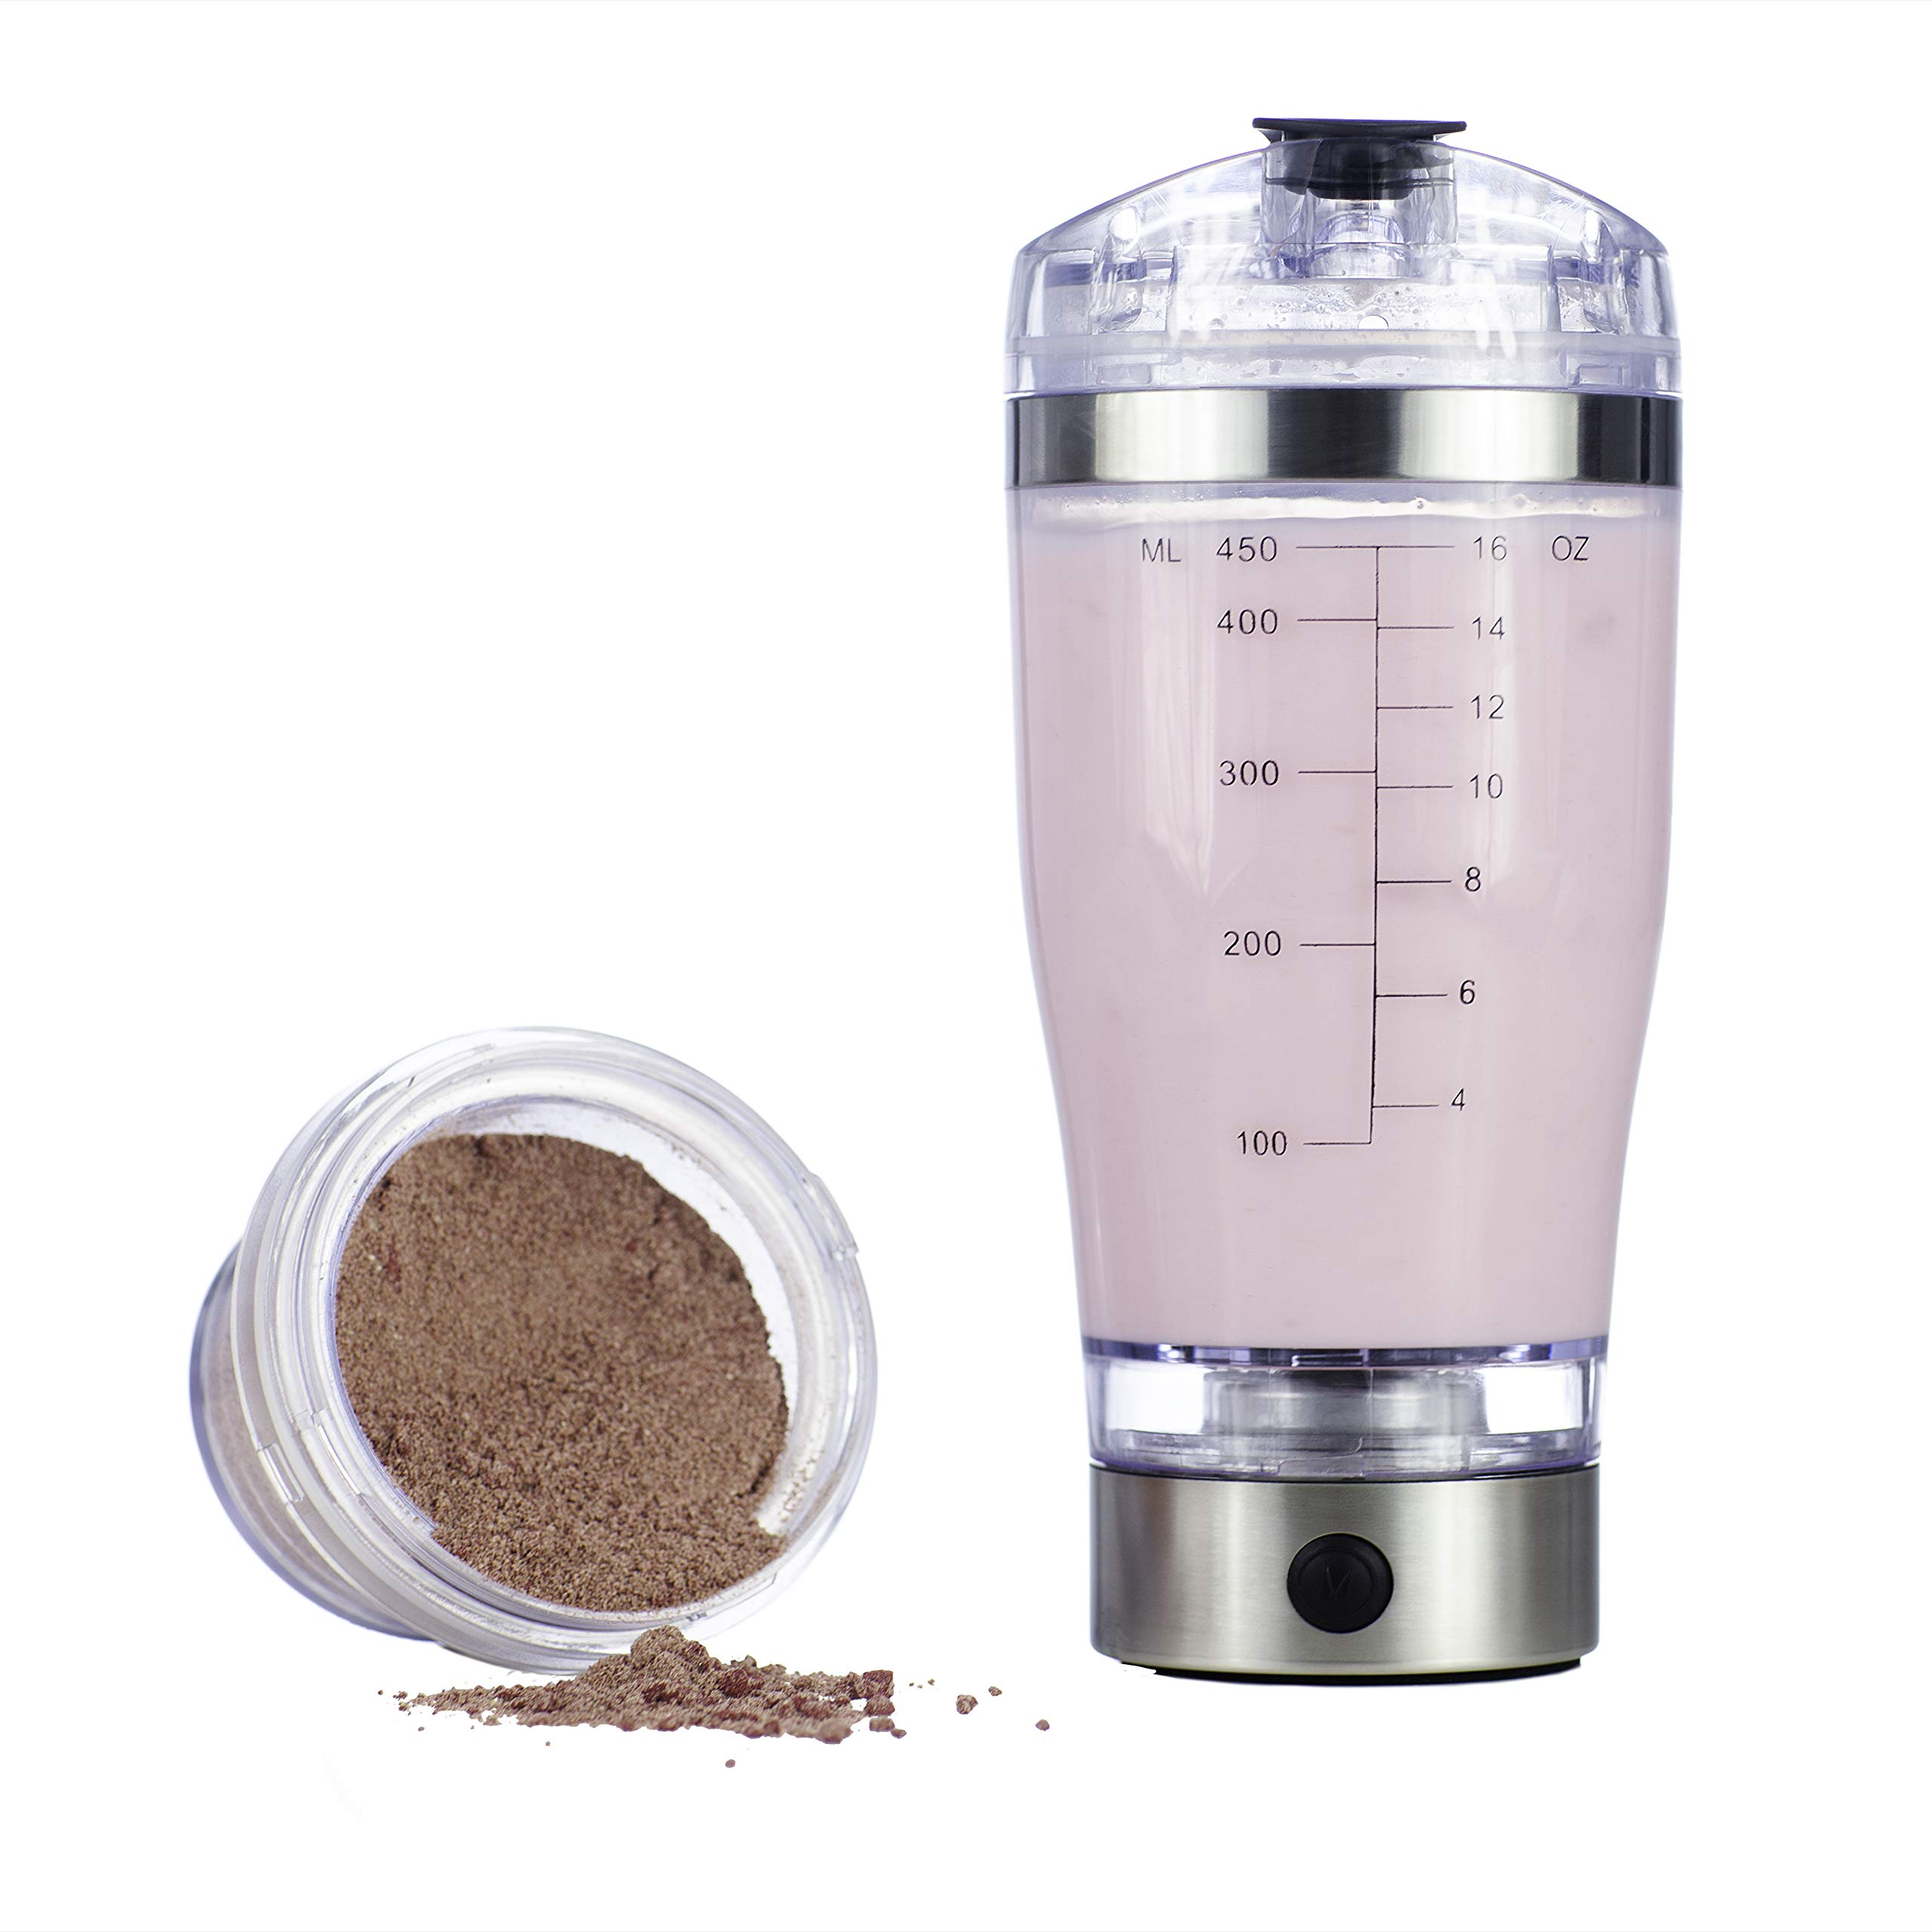 Vortex Select Portable Mixer Shaker Blender Bottle with Ingredients Cup and USB (16 oz.)